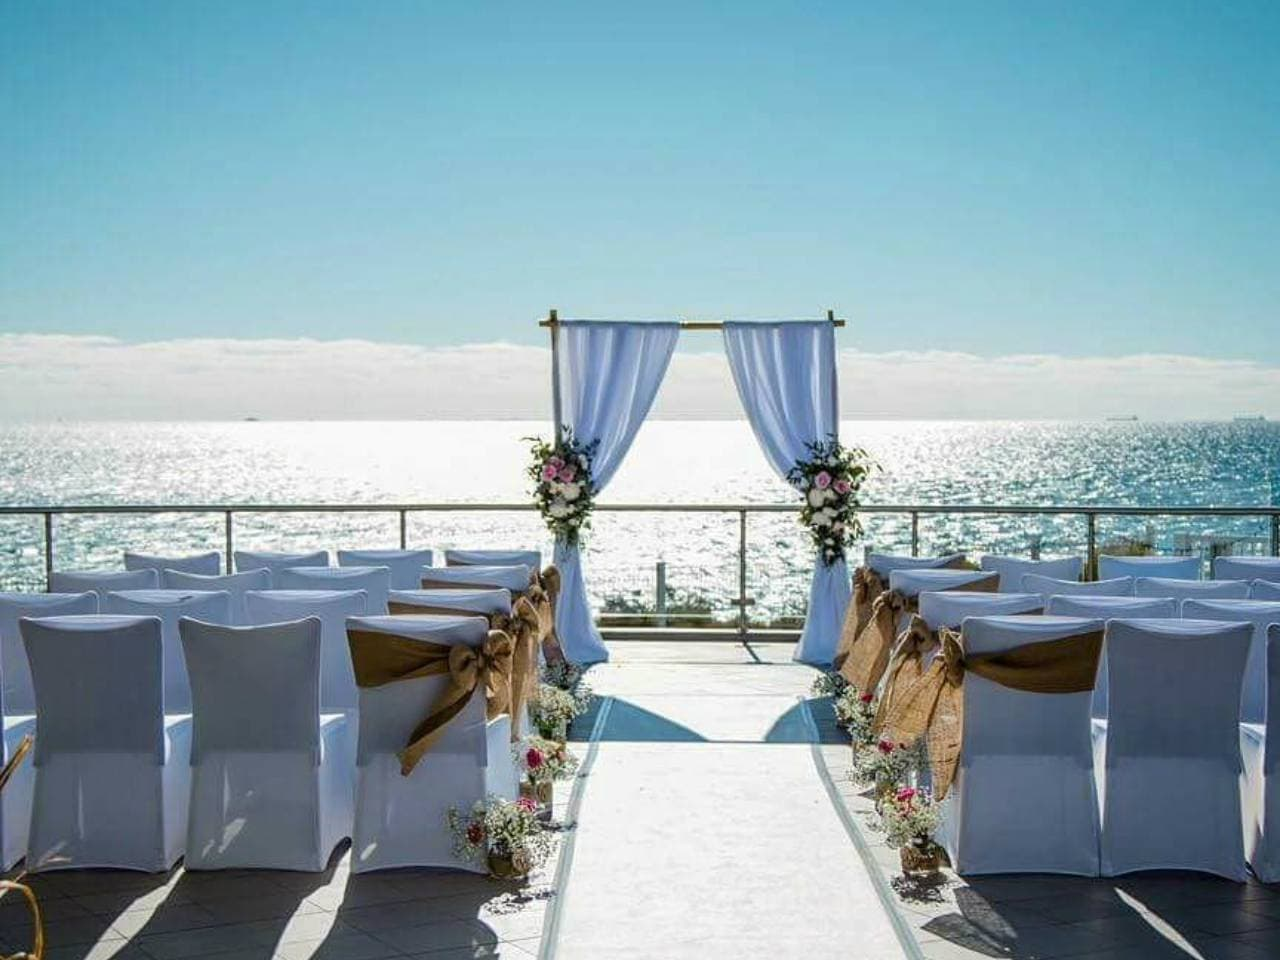 A Alter Leading Up to the Sea With White Chairs For The Guests.